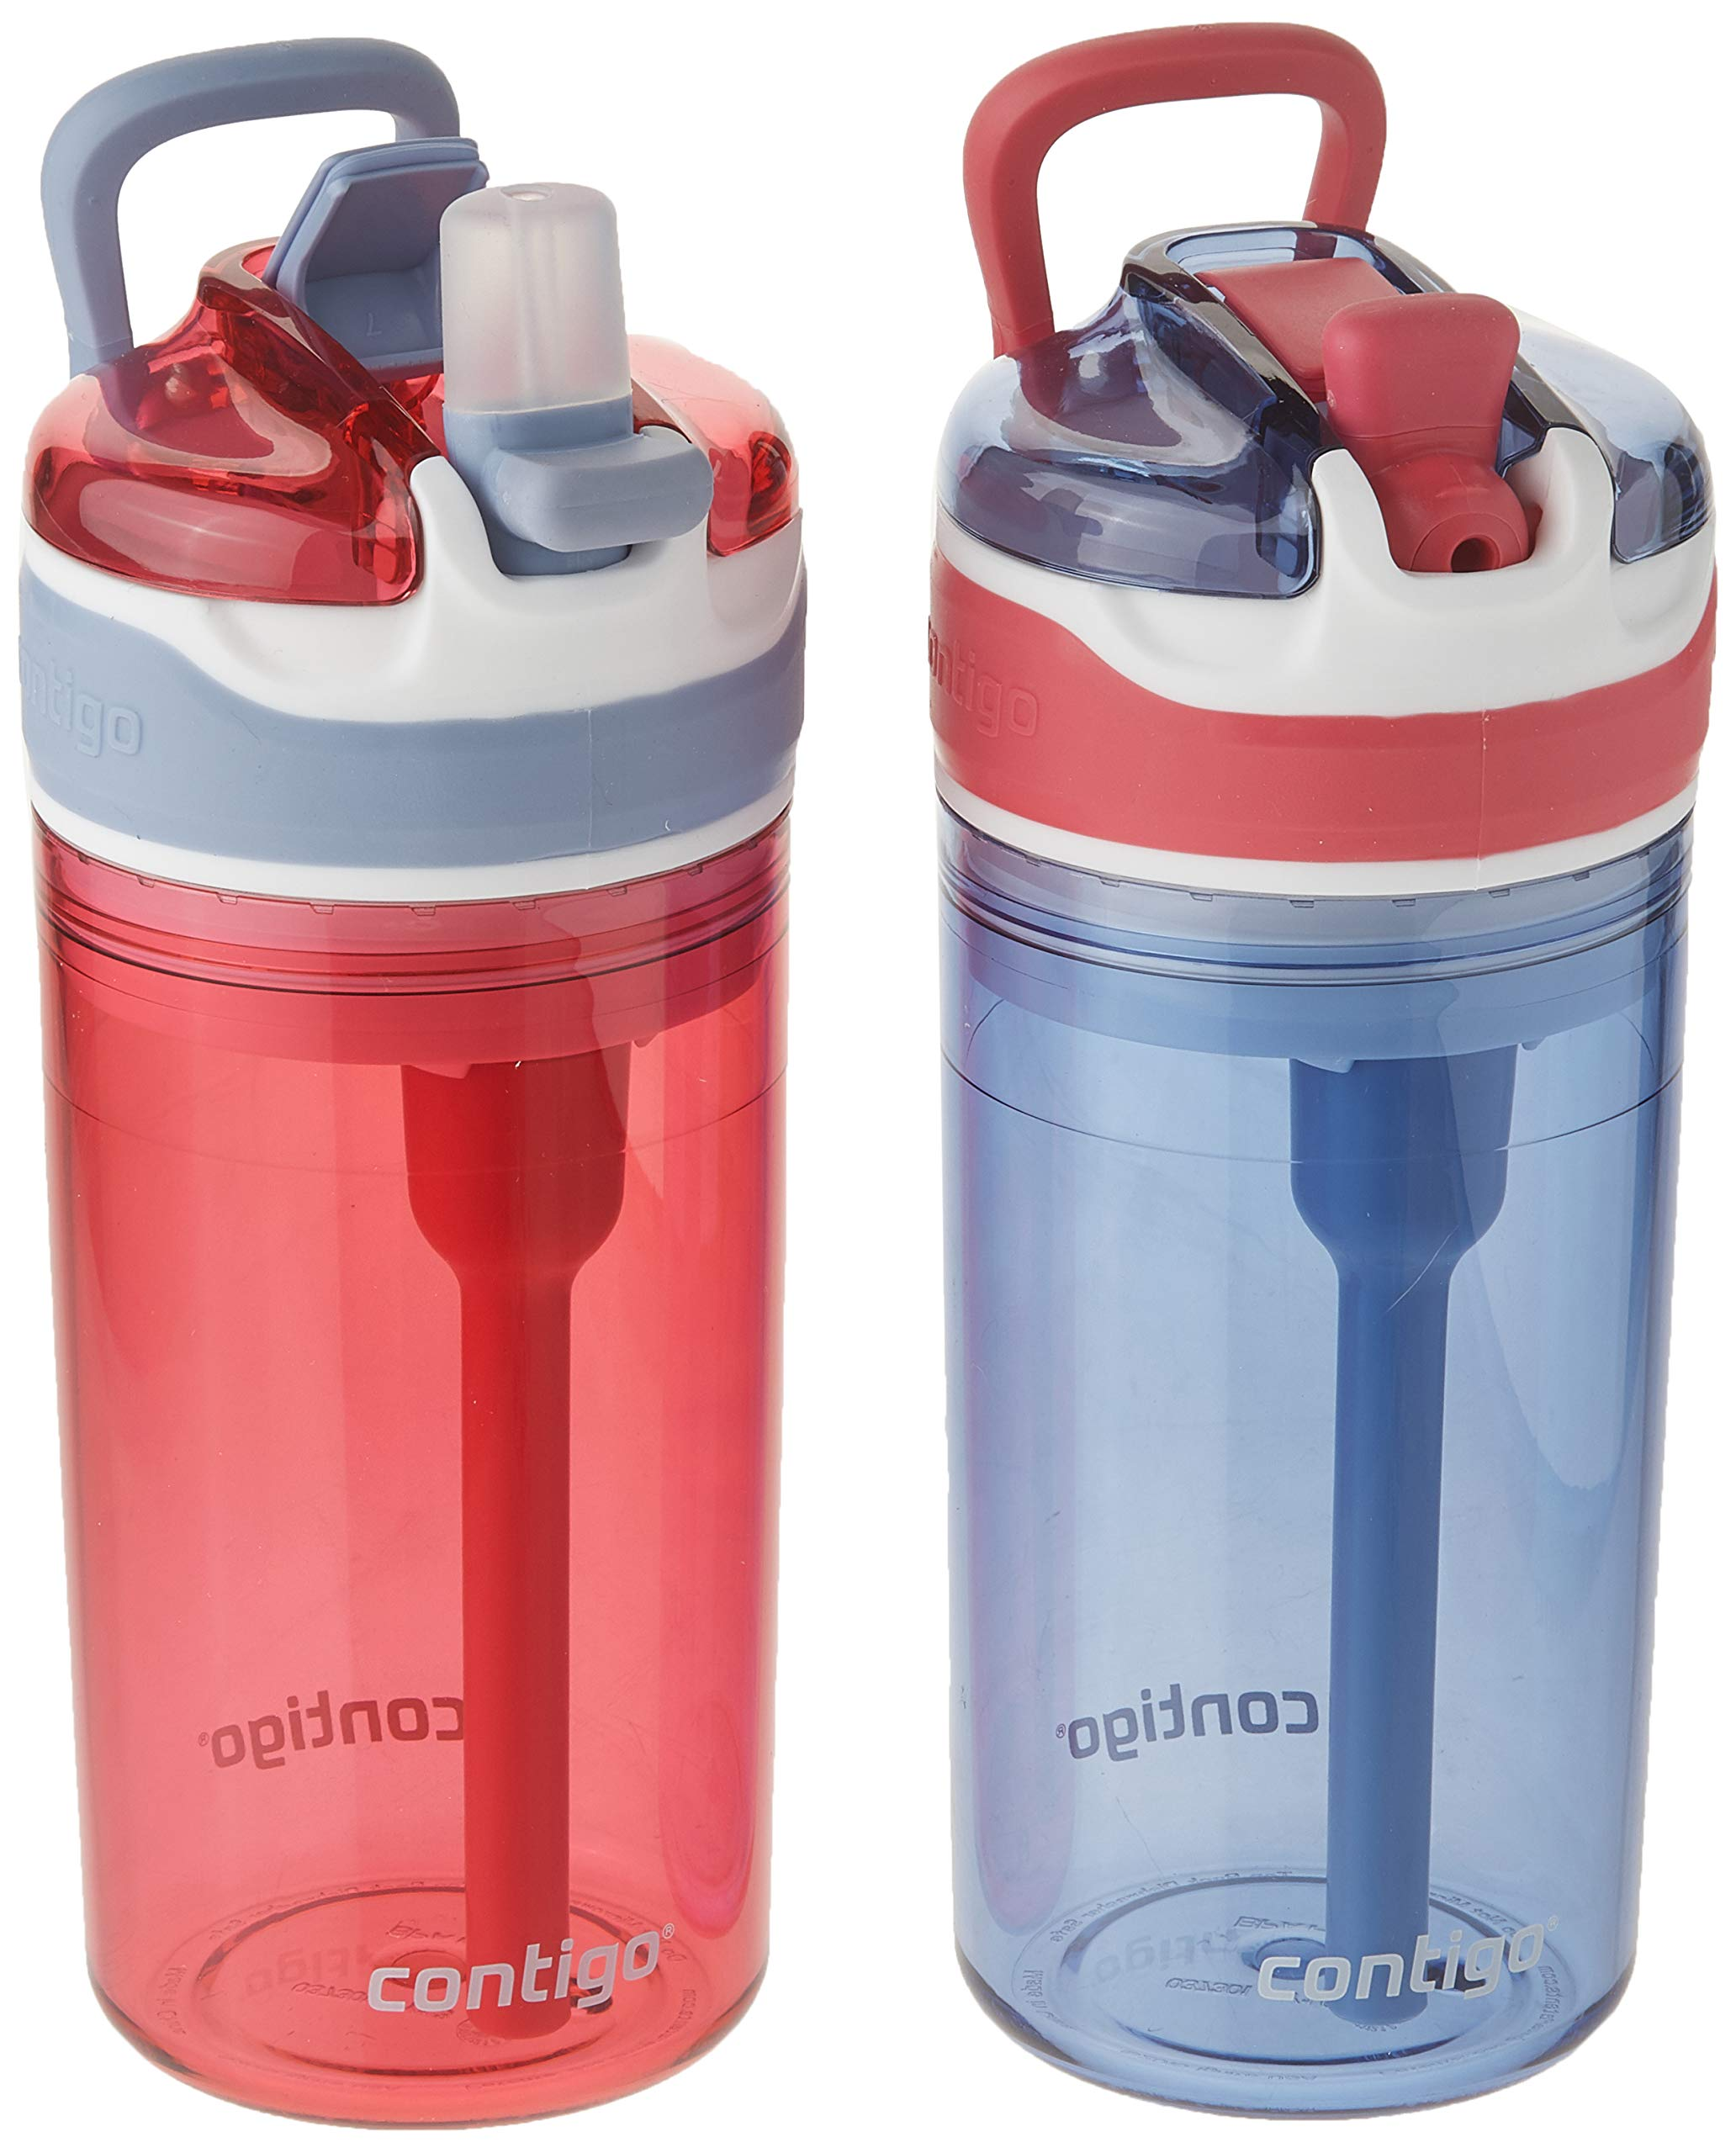 Contigo Tumbler Featuring, Small, Red & Blue by Contigo